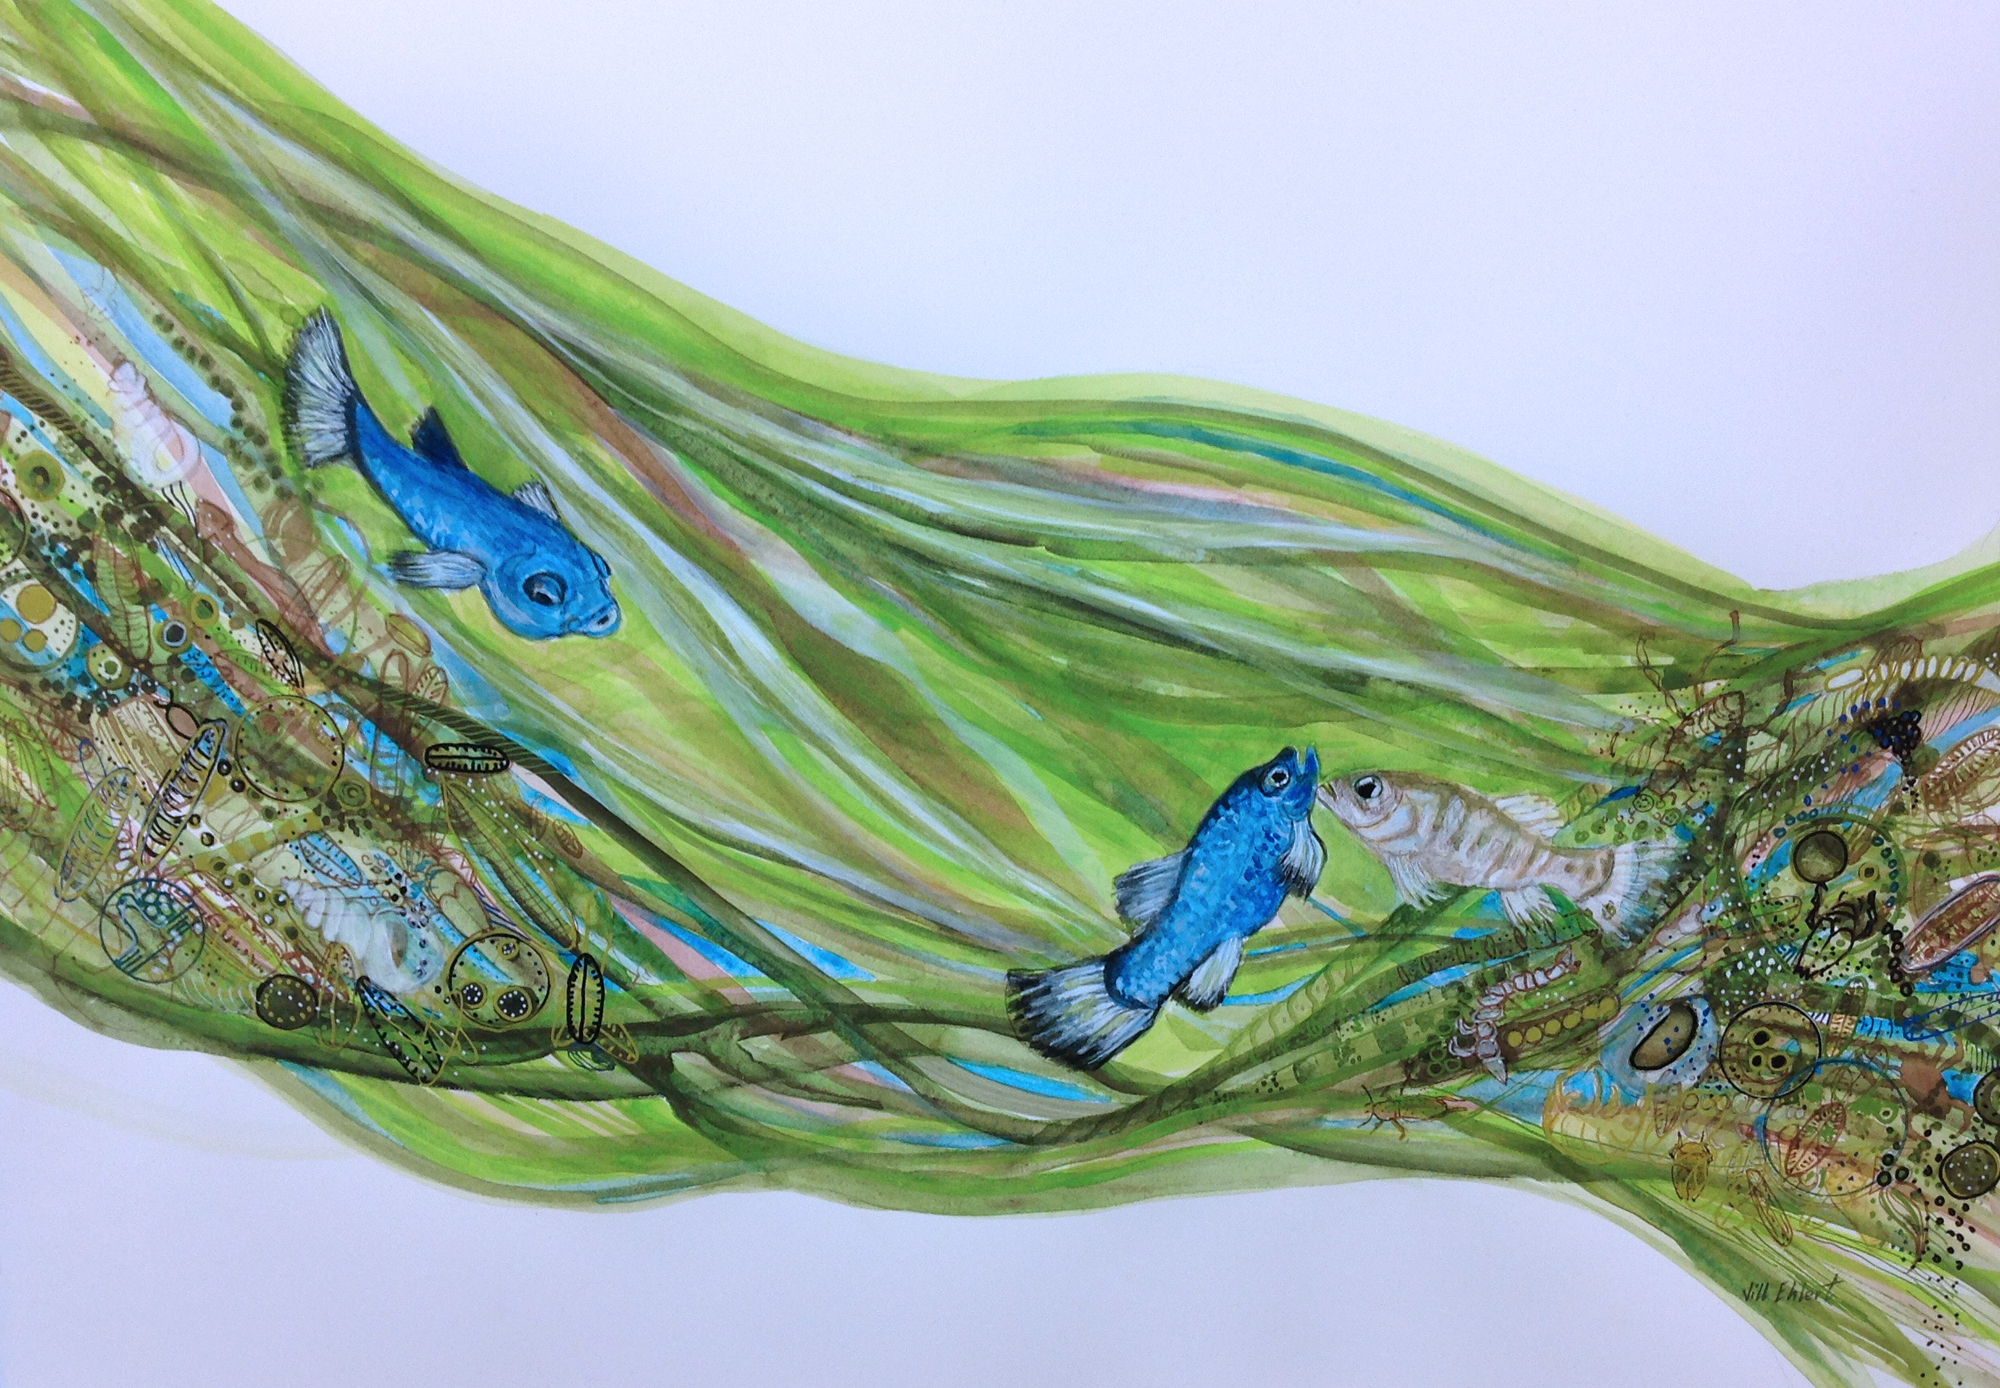 Watercolour, pencil crayon, walnut and acrylic inks on Arches Watercolour paper.    Jill Ehlert